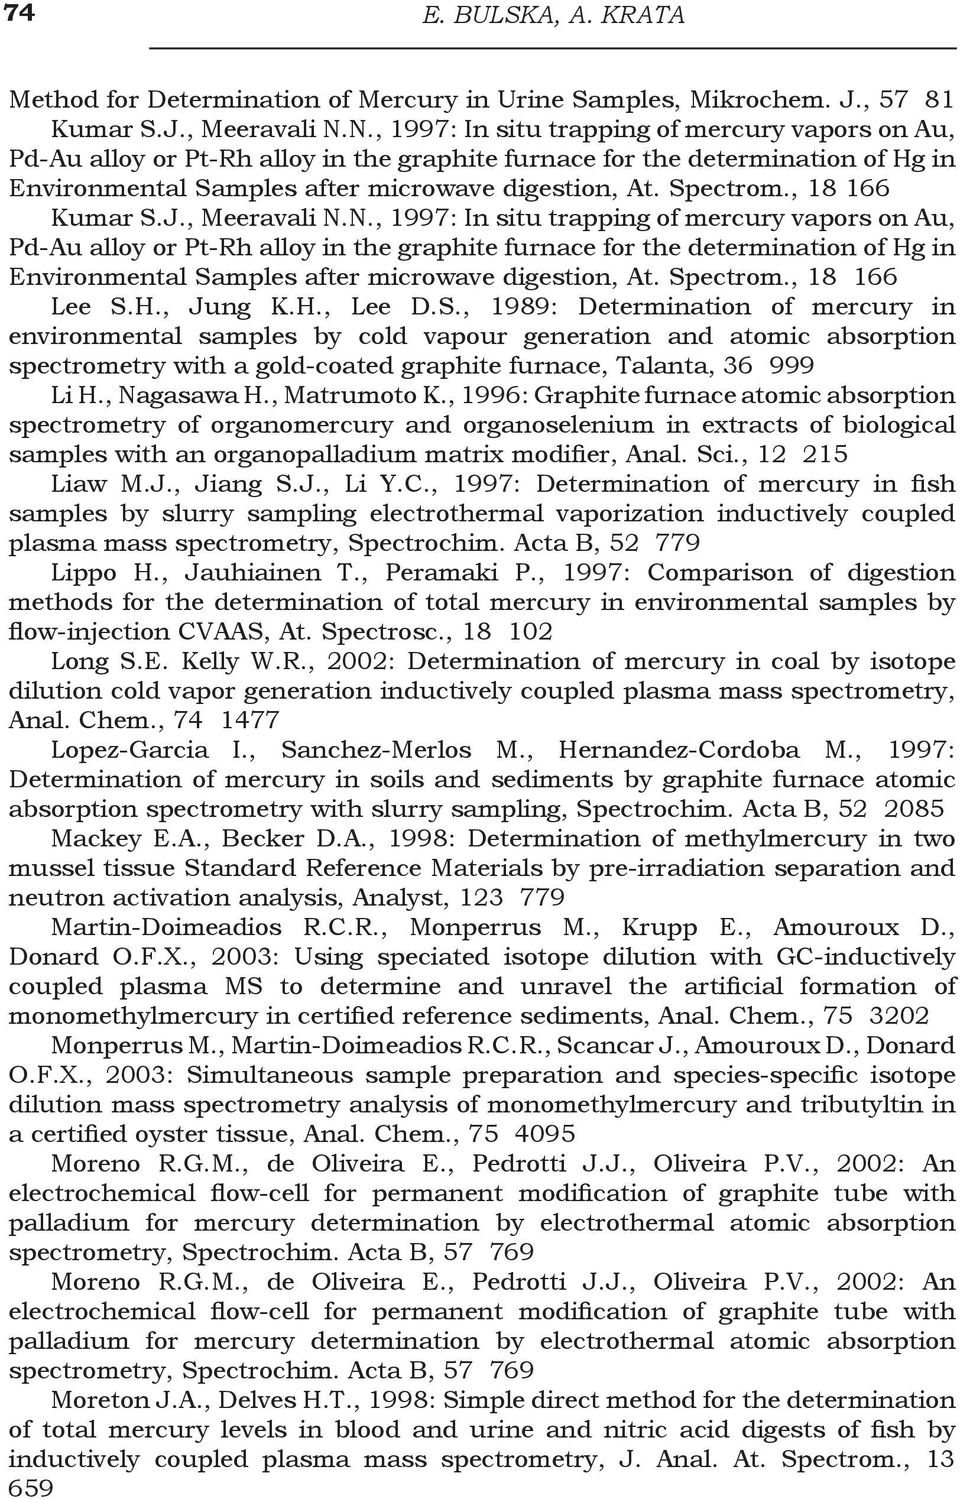 , 18 166 Kumar S.J., Meeravali N., 18 166 Lee S.H., Jung K.H., Lee D.S., 1989: Determination of mercury in environmental samples by cold vapour generation and atomic absorption spectrometry with a gold-coated graphite furnace, Talanta, 36 999 Li H.